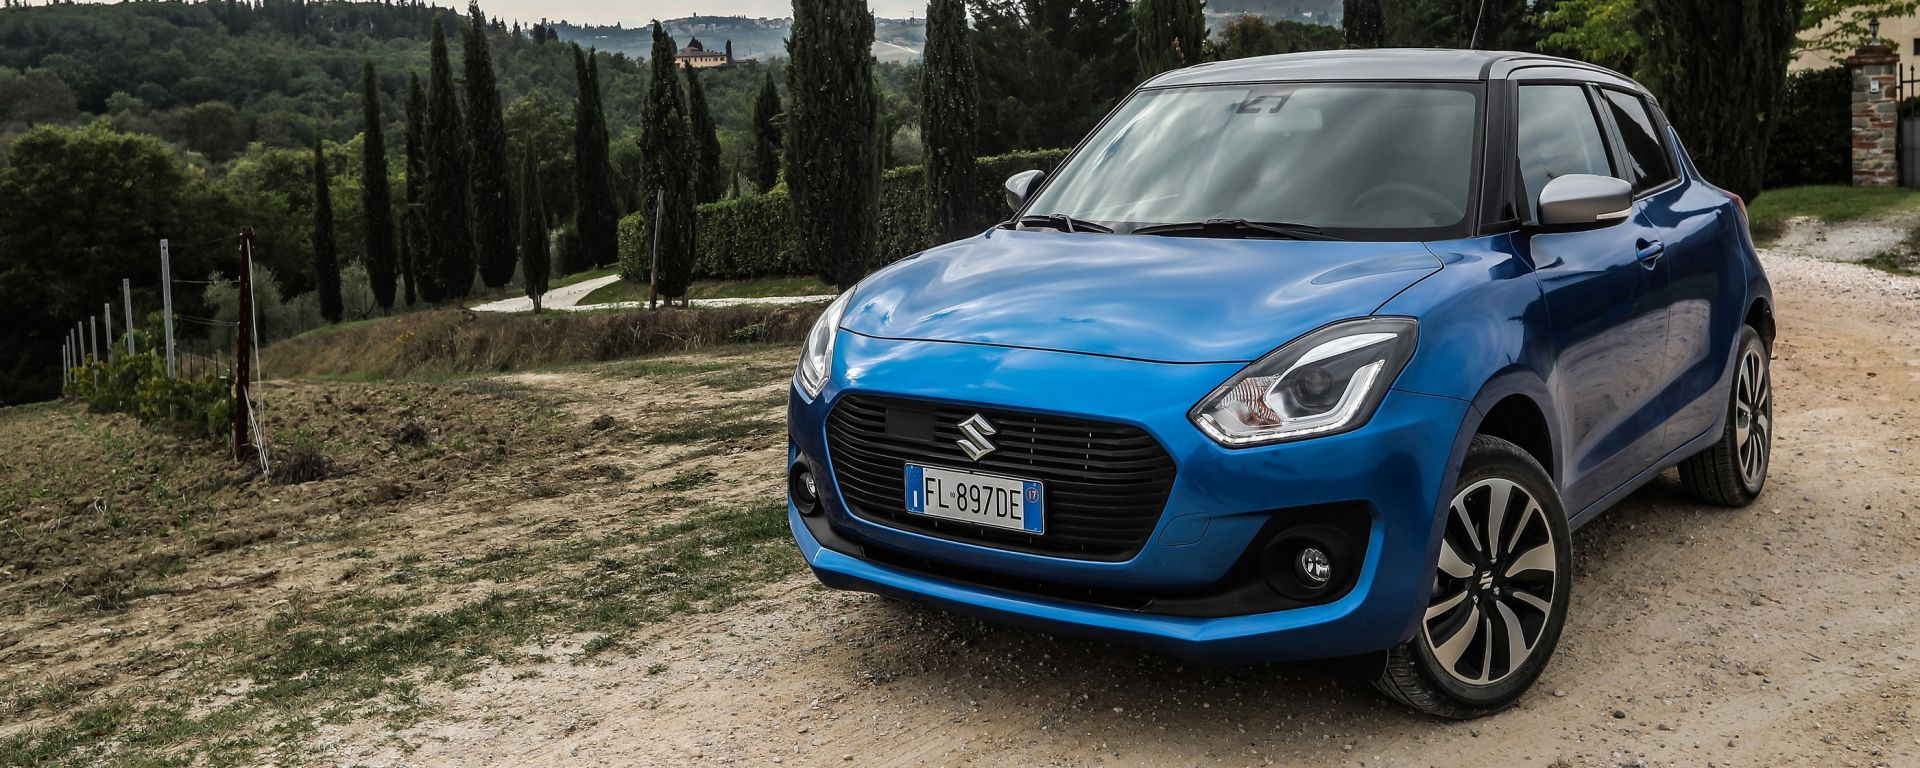 Suzuki Swift Hybrid 4WD AllGrip: unica sotto i 4 metri